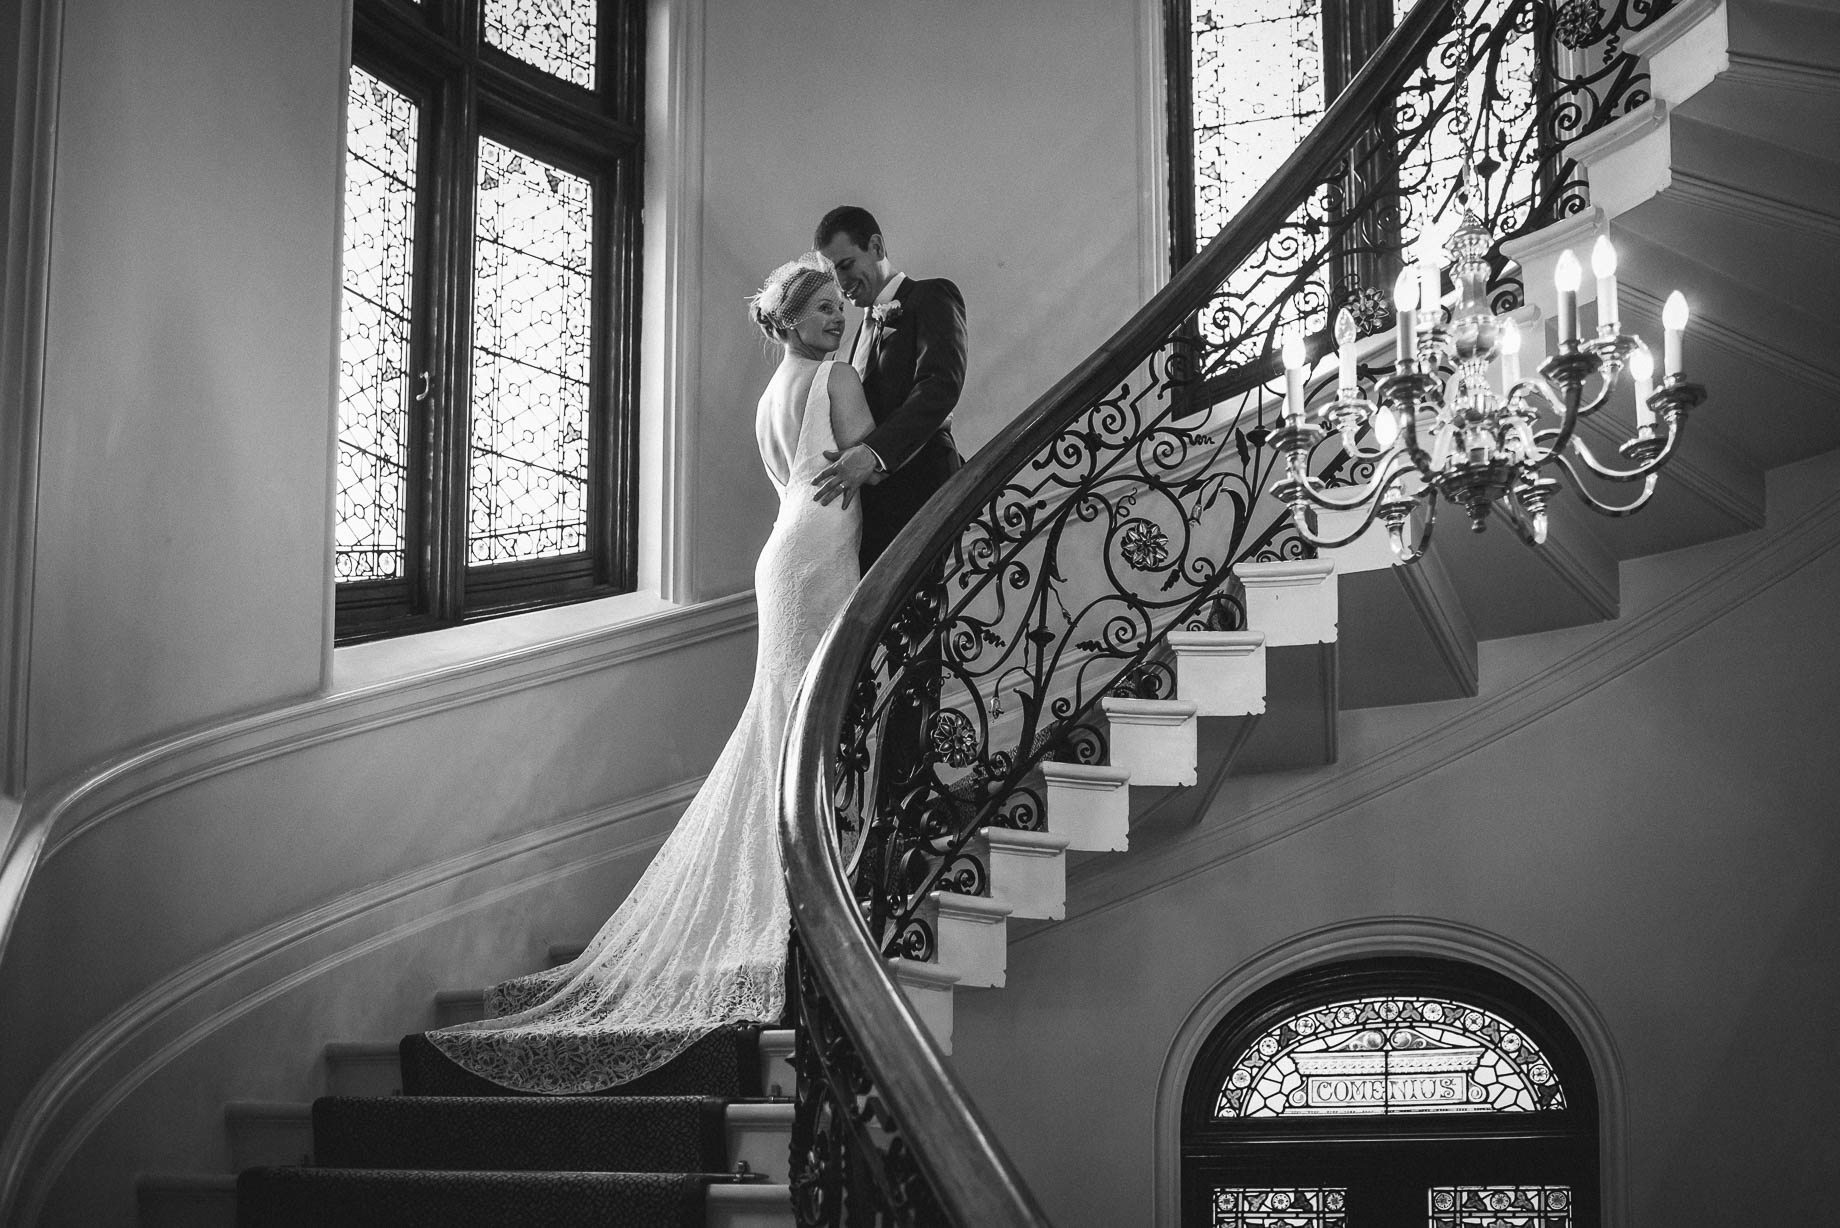 Bllomsbury House wedding photography in London - Katie and Taylor (103 of 156)